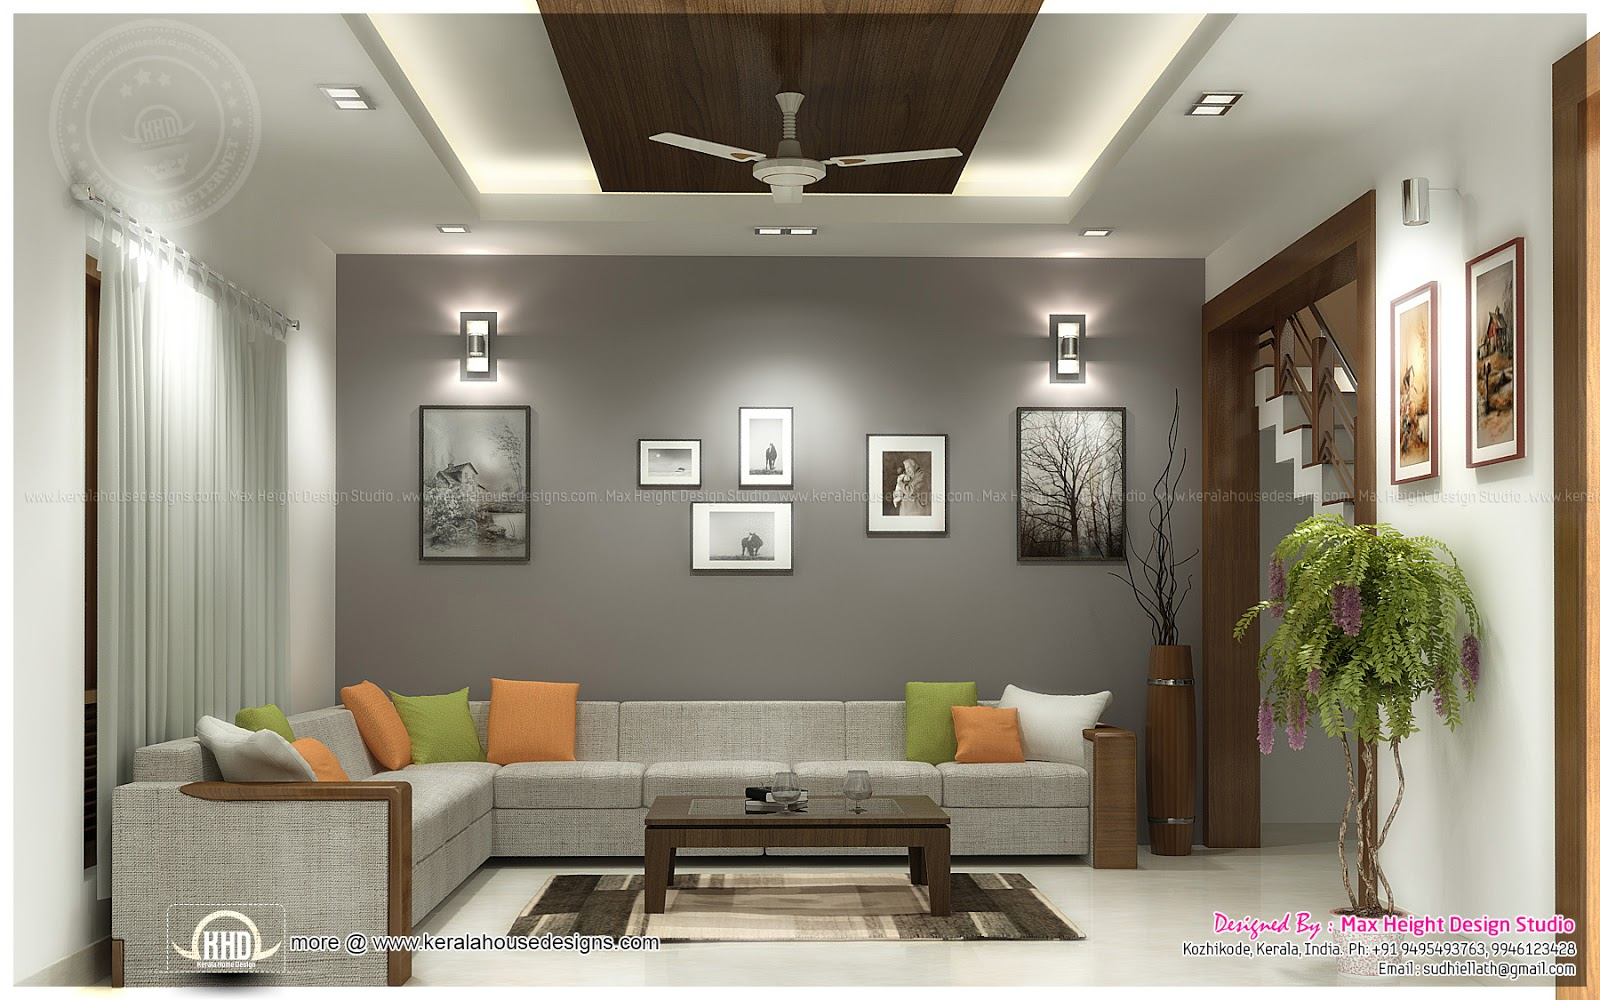 Beautiful interior ideas for home kerala home design and floor plans Interior design ideas for the home